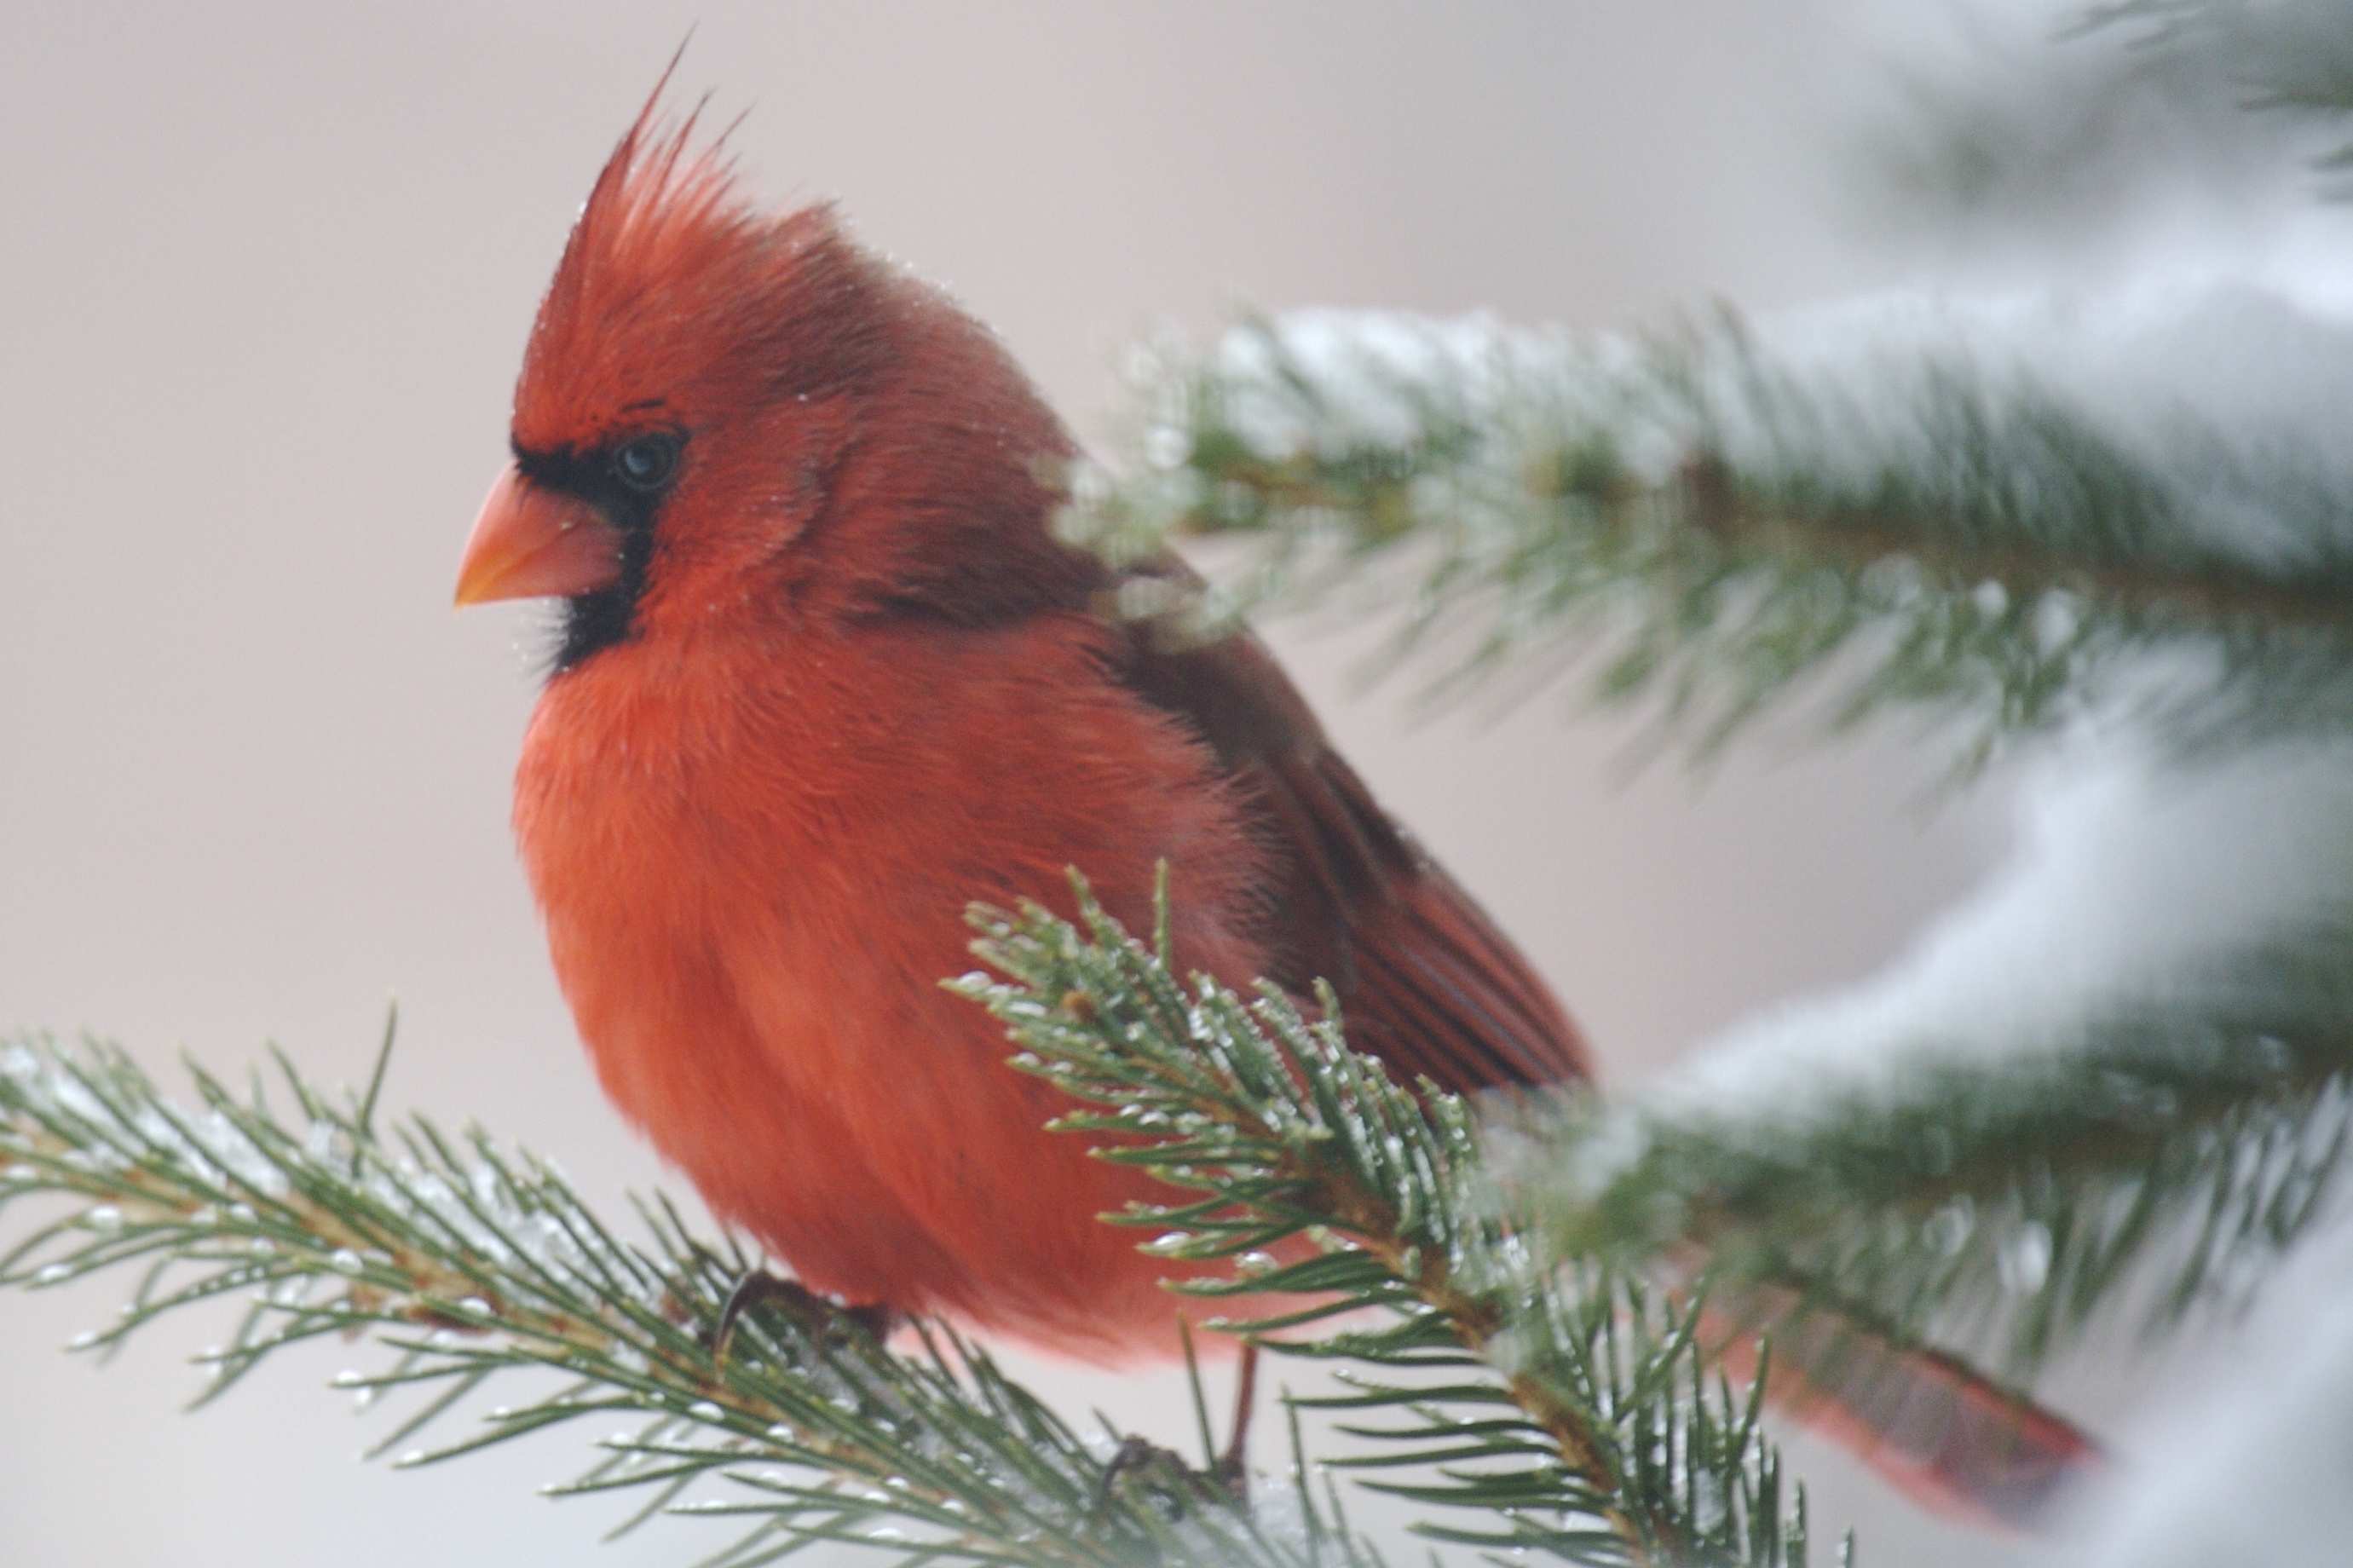 A brilliant red cardinal taking refuge in an evergreen.